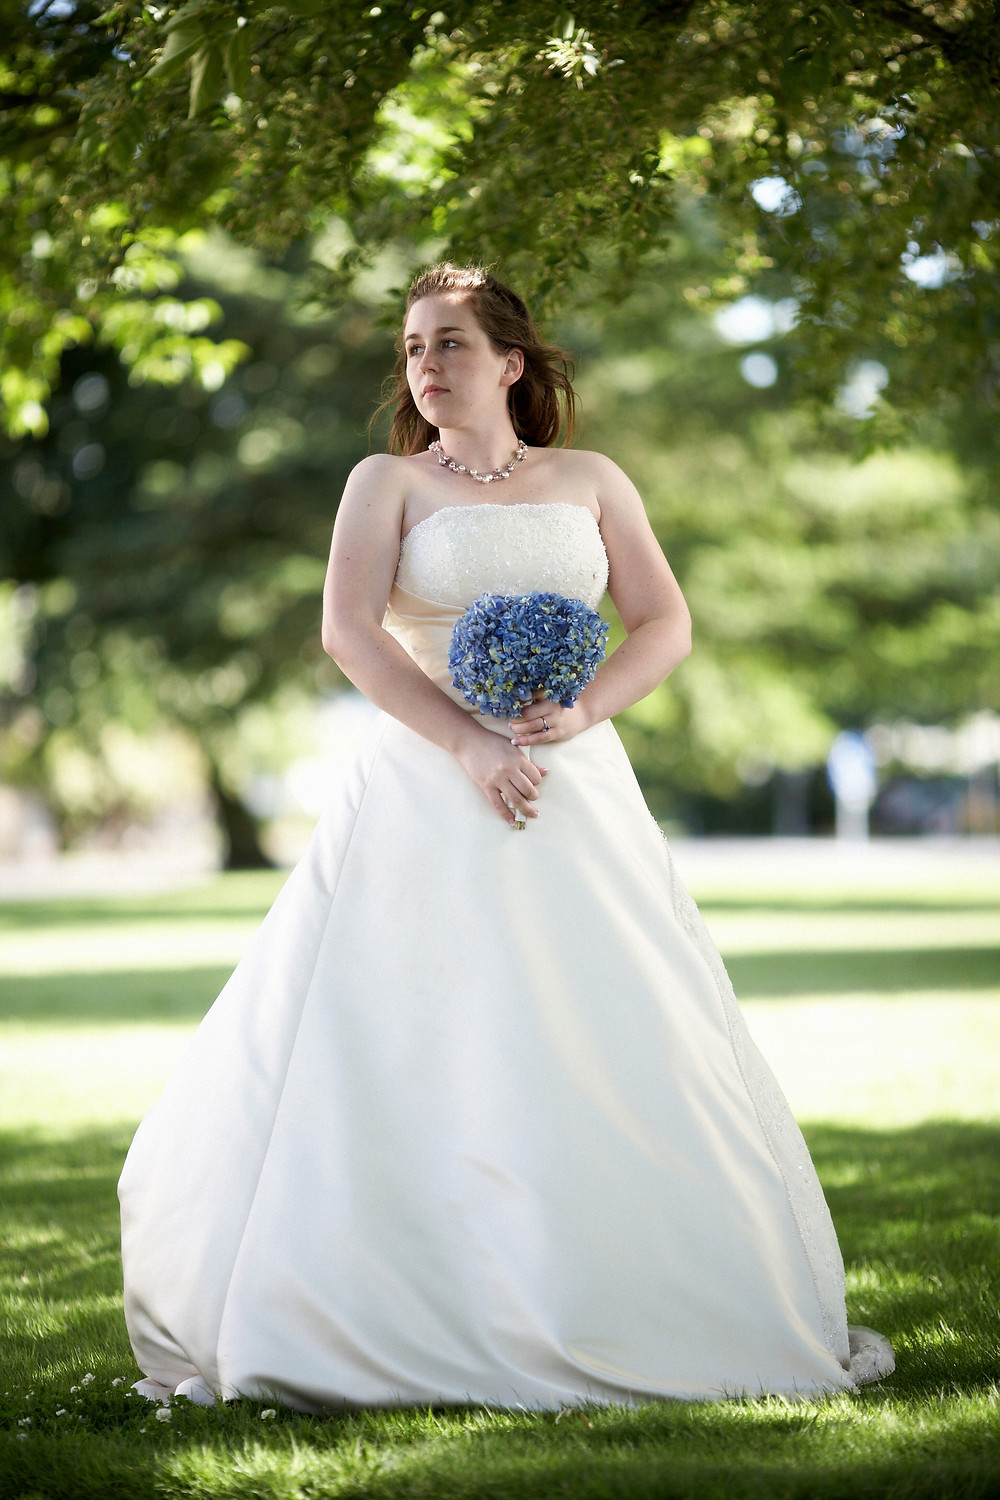 Bride is strapless wedding gown